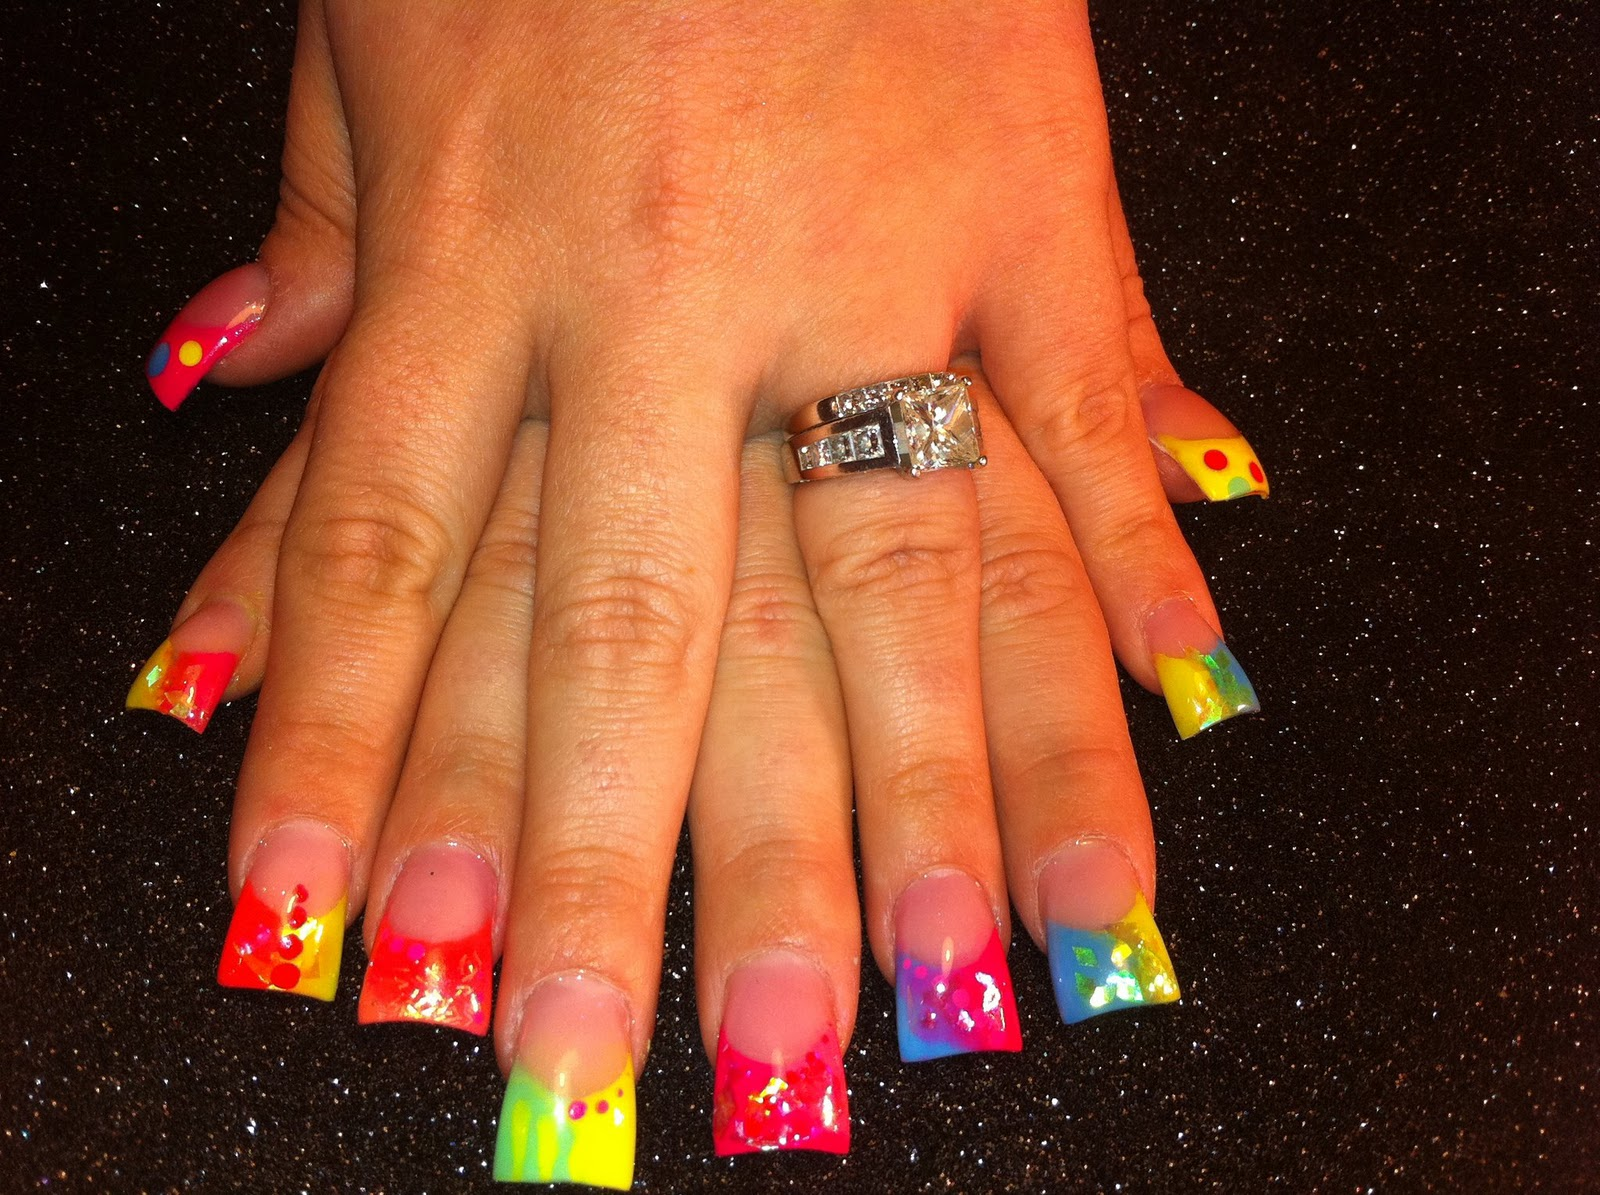 Nails Done Right: Vacation !!!